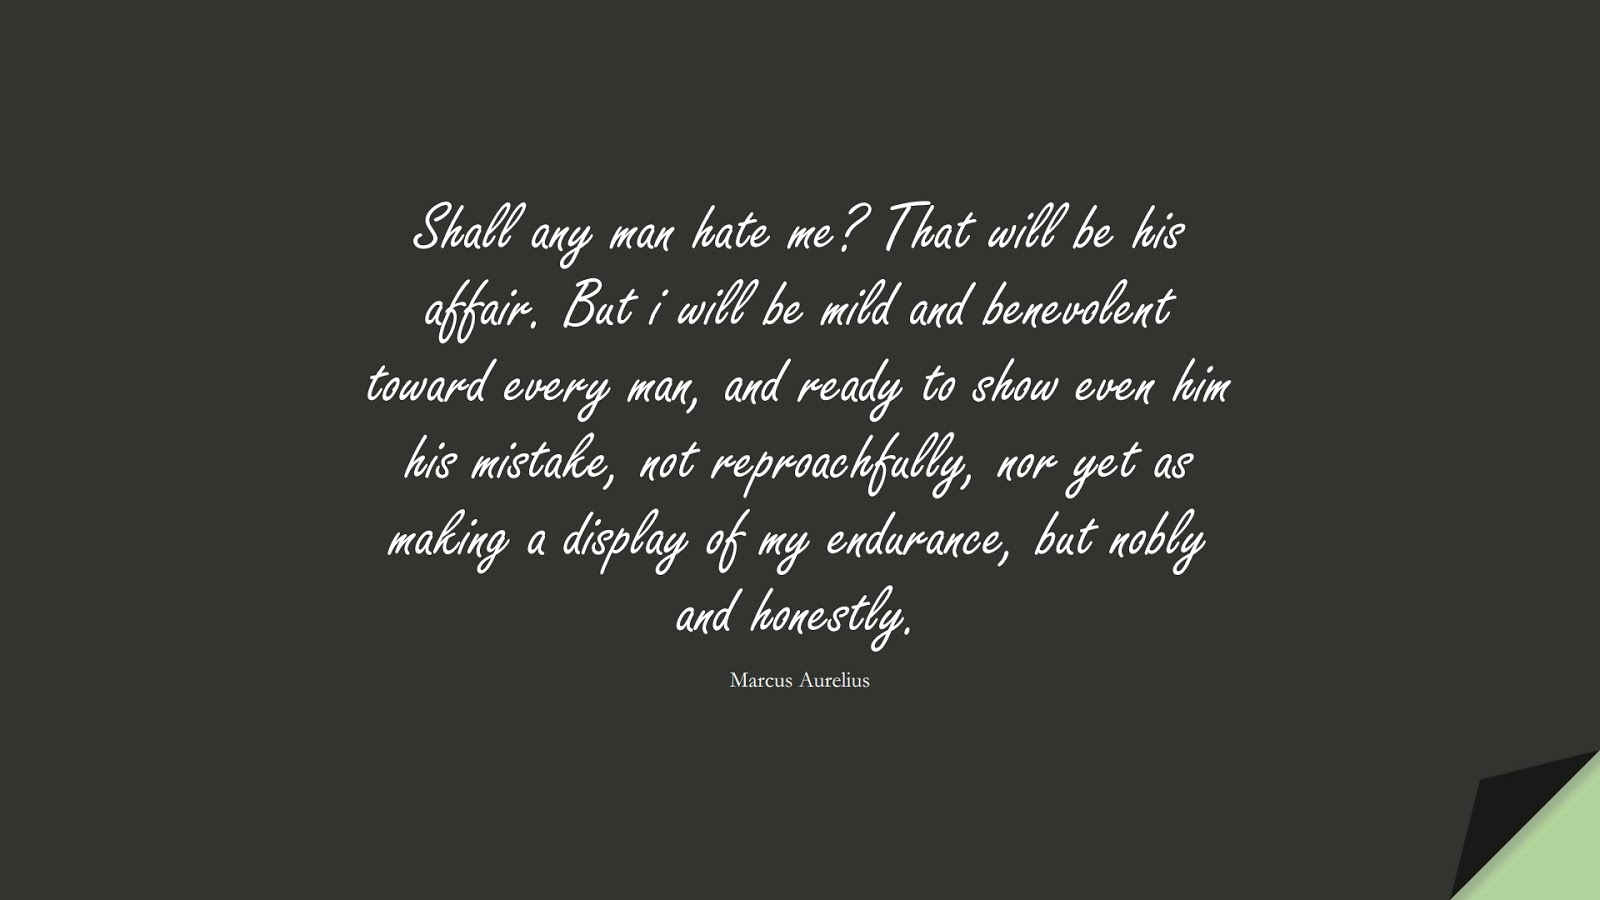 Shall any man hate me? That will be his affair. But i will be mild and benevolent toward every man, and ready to show even him his mistake, not reproachfully, nor yet as making a display of my endurance, but nobly and honestly. (Marcus Aurelius);  #MarcusAureliusQuotes